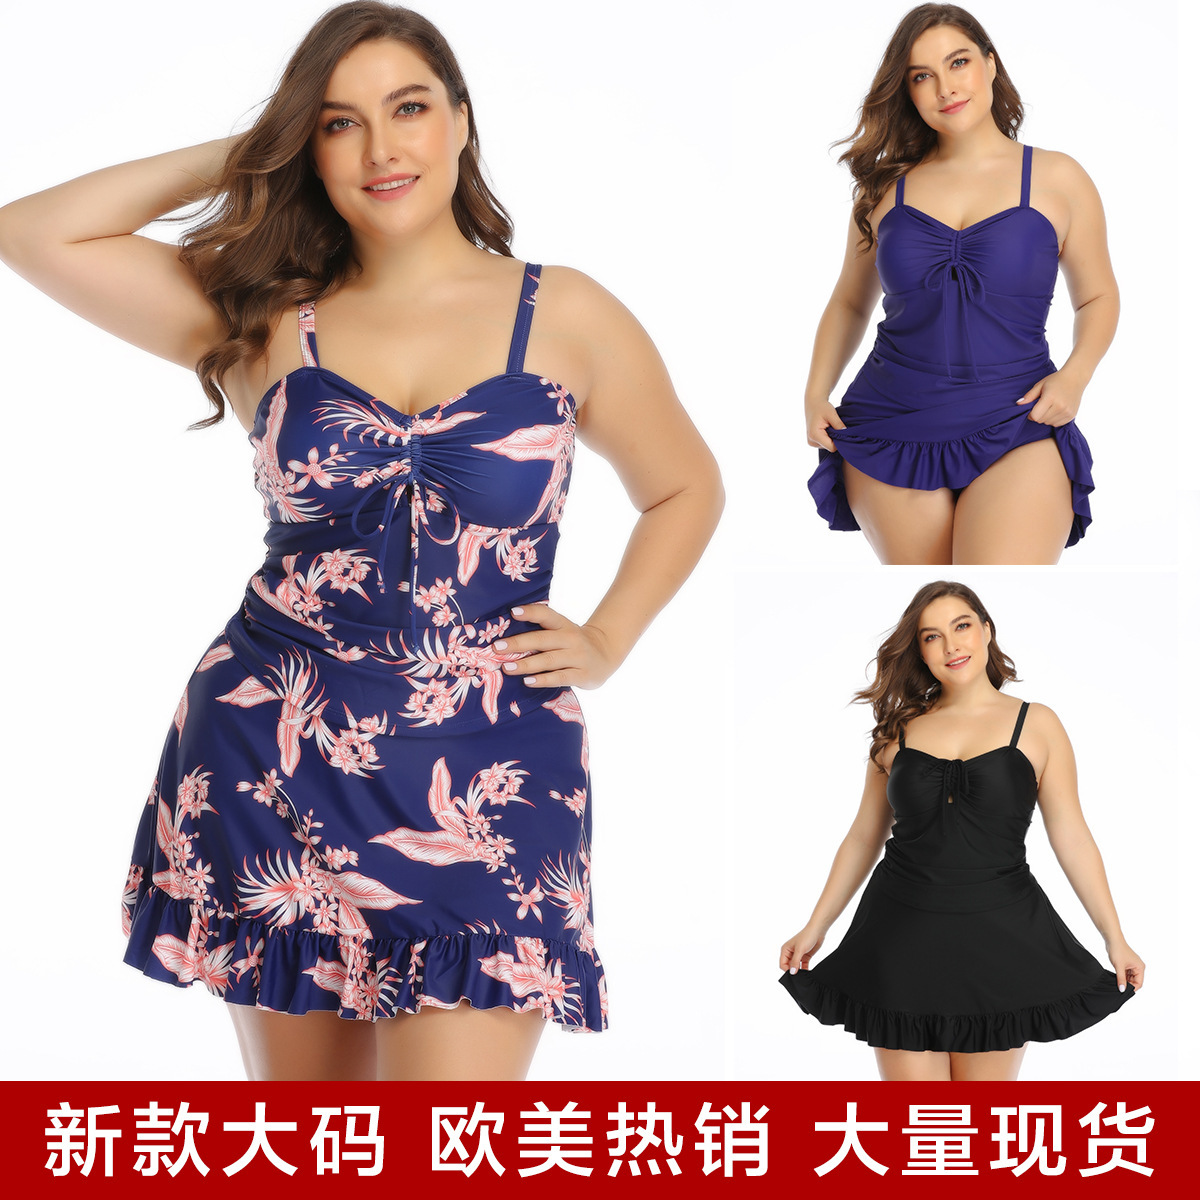 2020 Large Size Swimming Suit Rope Pulling Skirt Type Large Size Two-piece Suit Monokini Swimwear Big Size High Cut